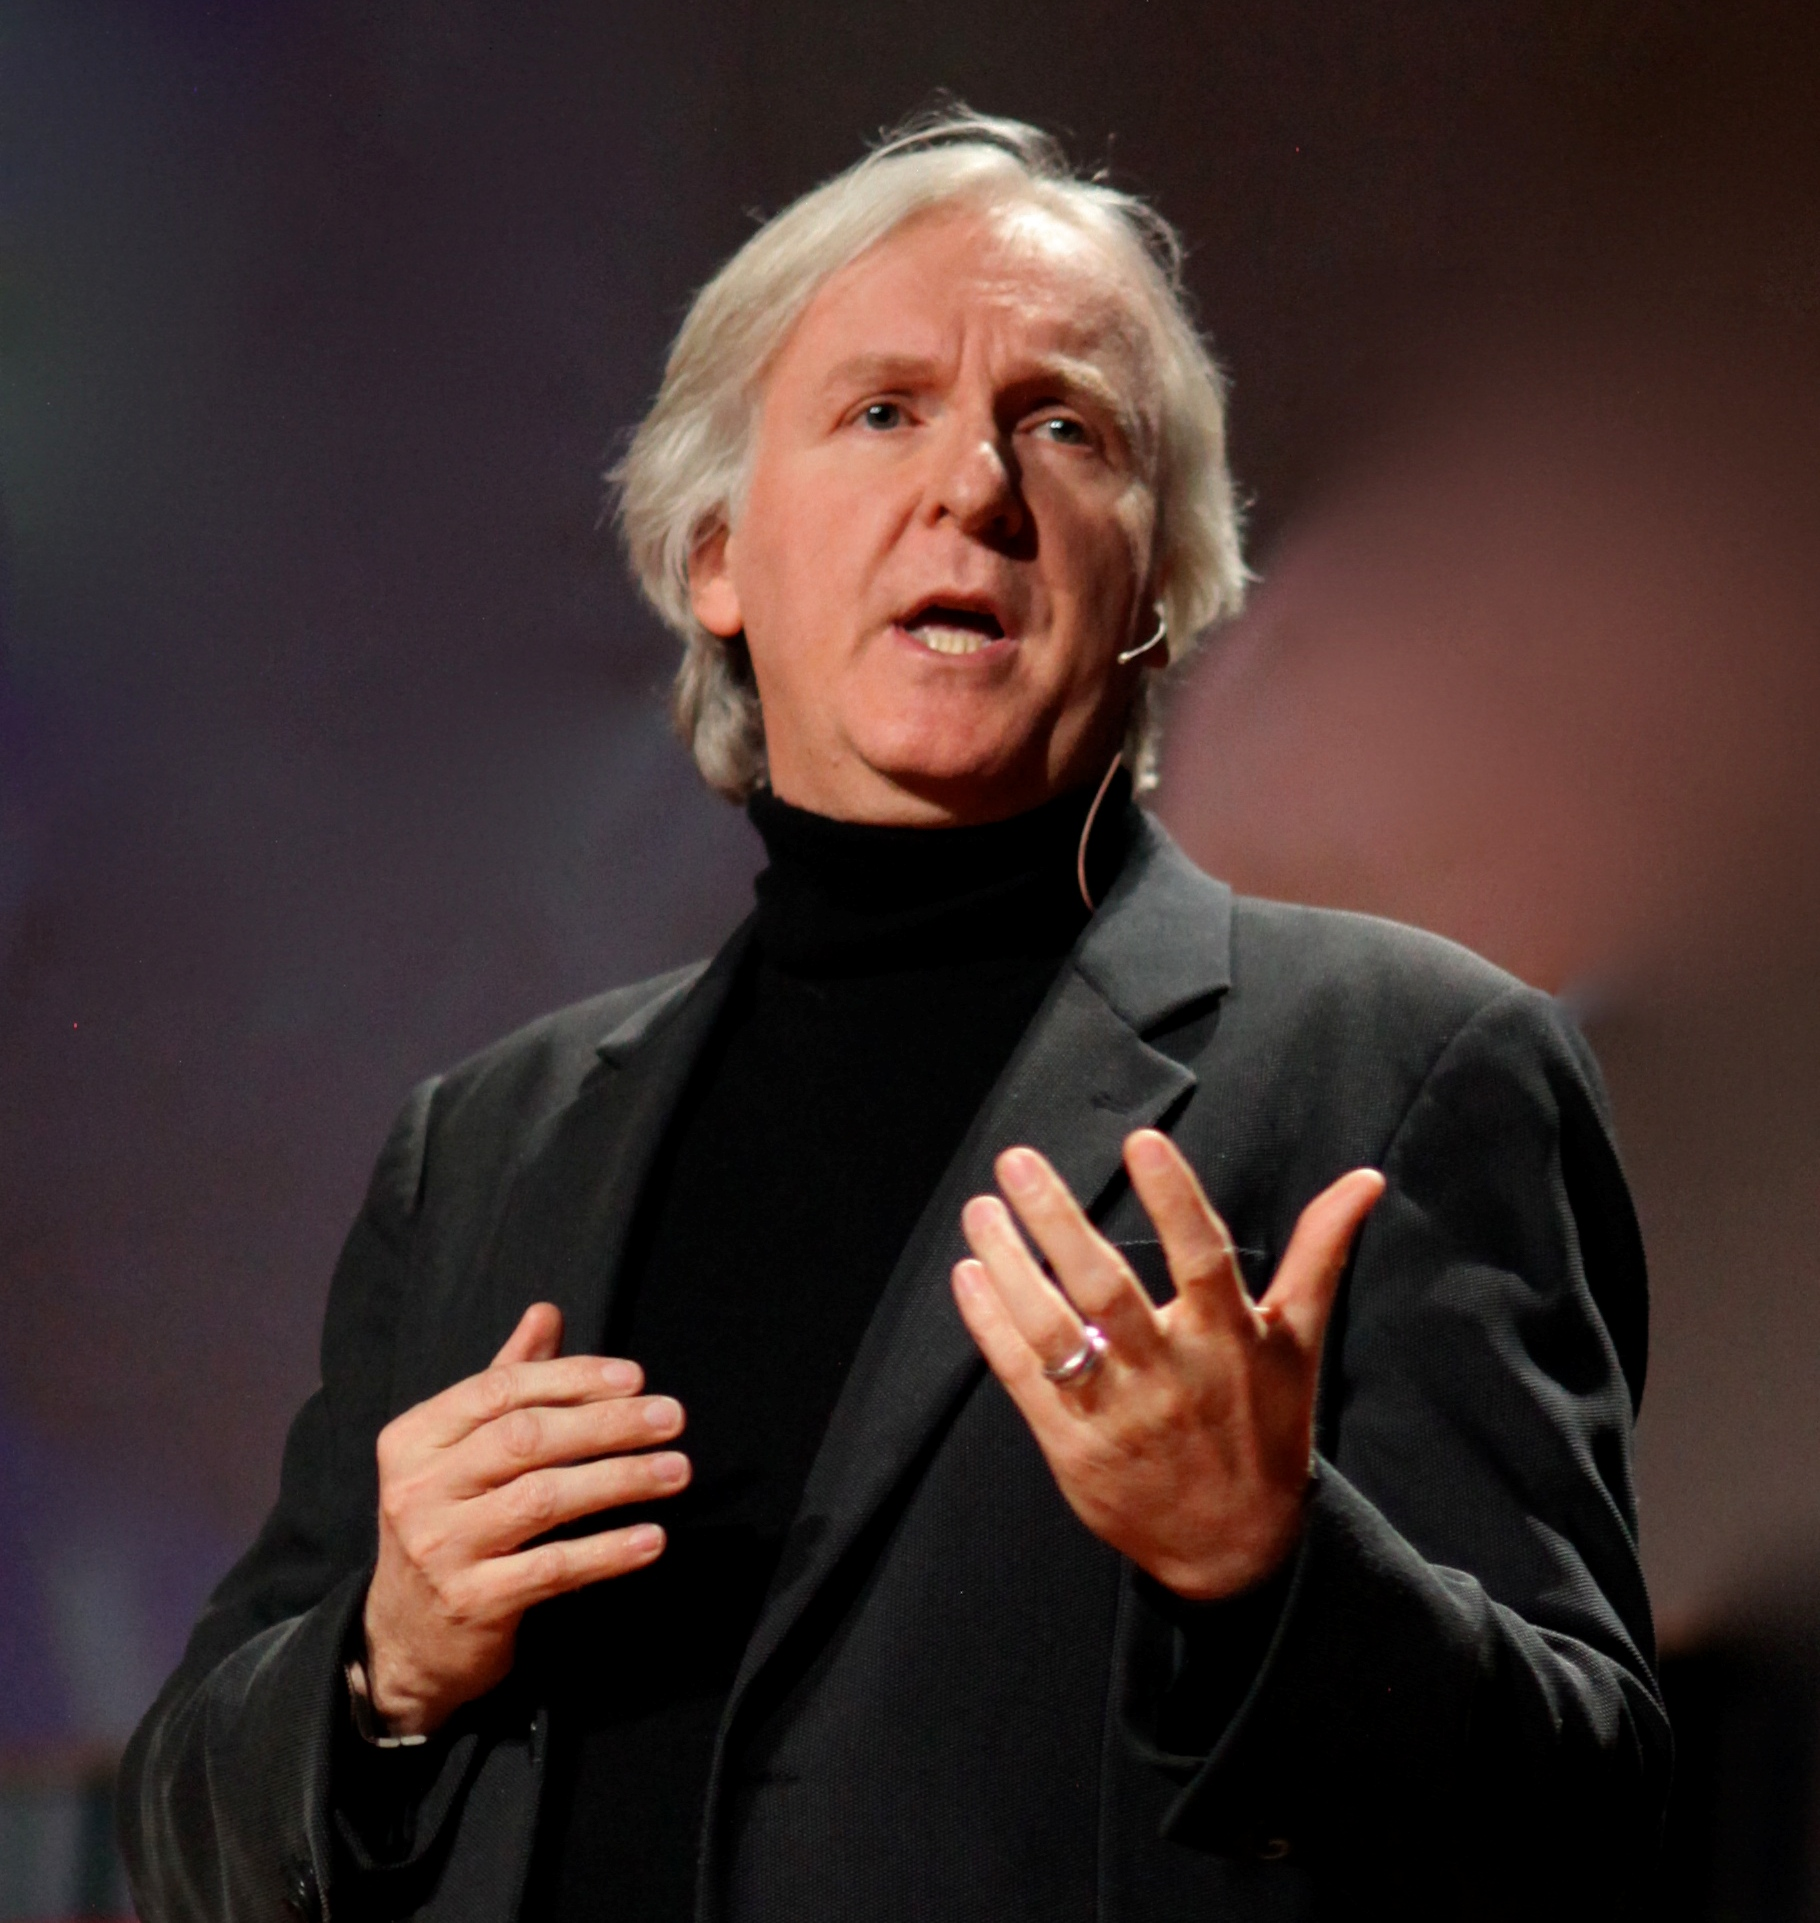 James Cameron: How To Finish A Huge Assignment Or Project Overnight